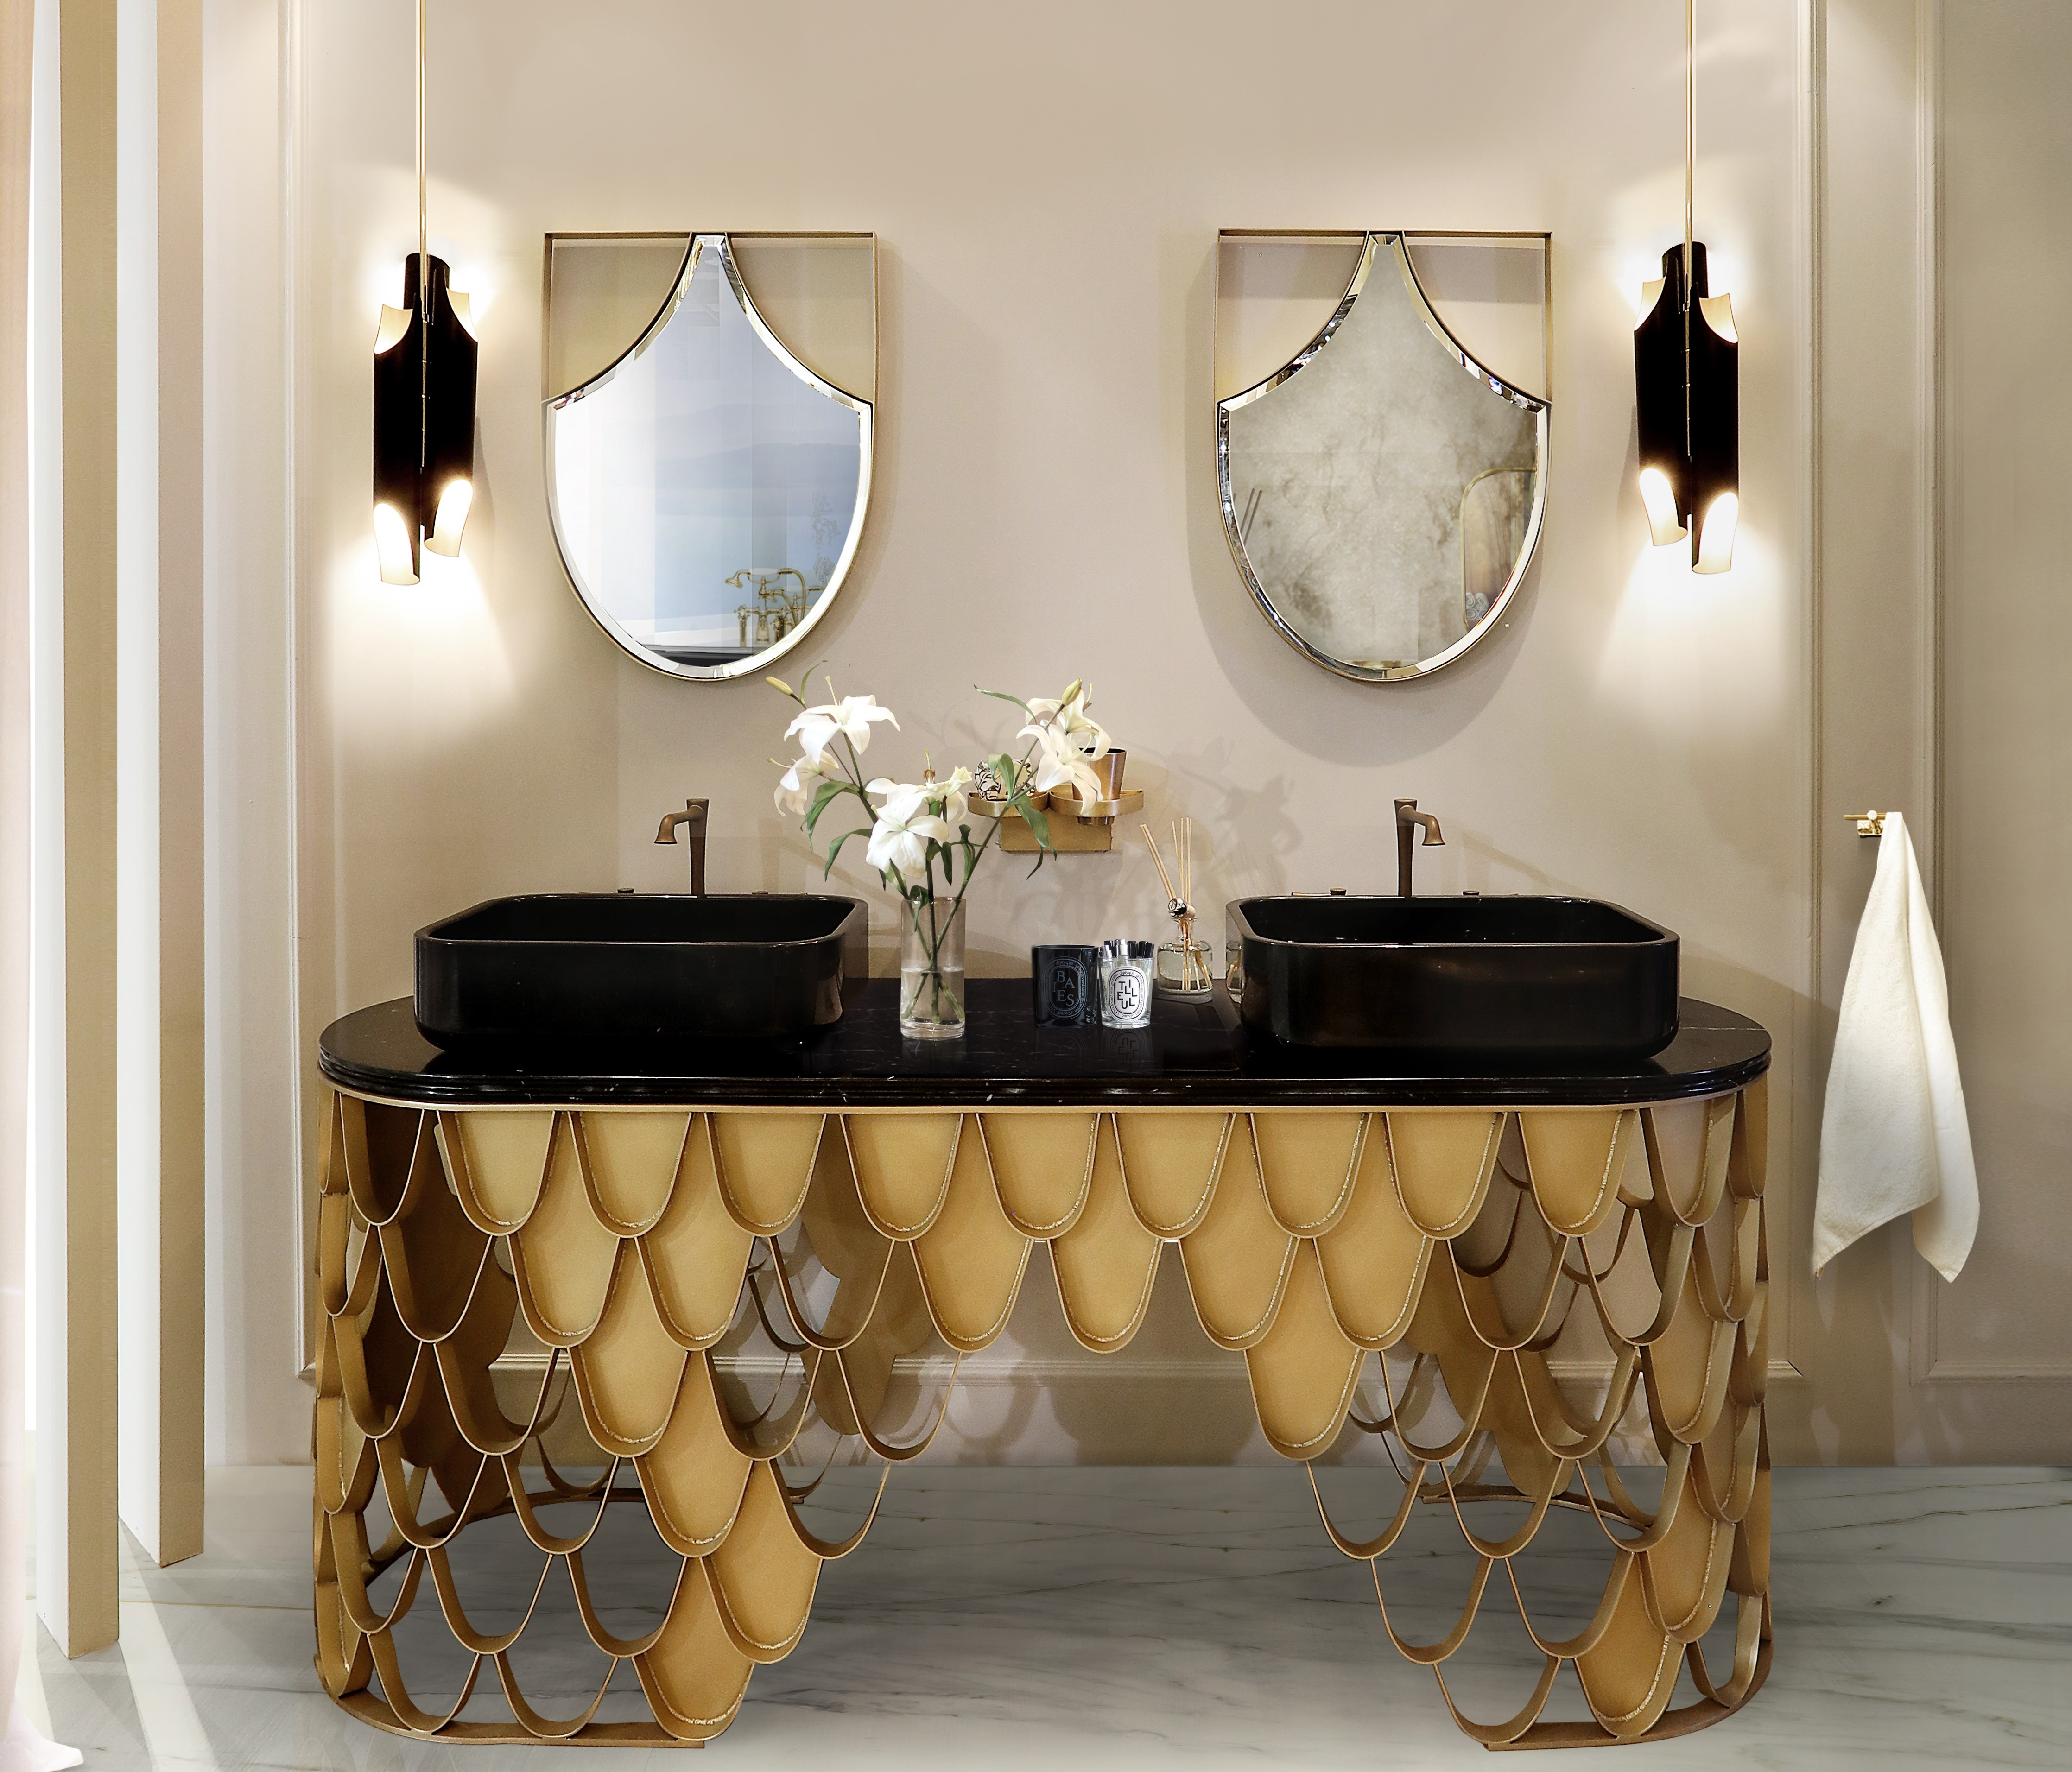 7 Amazing Bedroom Decorating Trends To Watch For 2018: Wall Mirror Ideas To Inspire Lavish Bathroom Designs